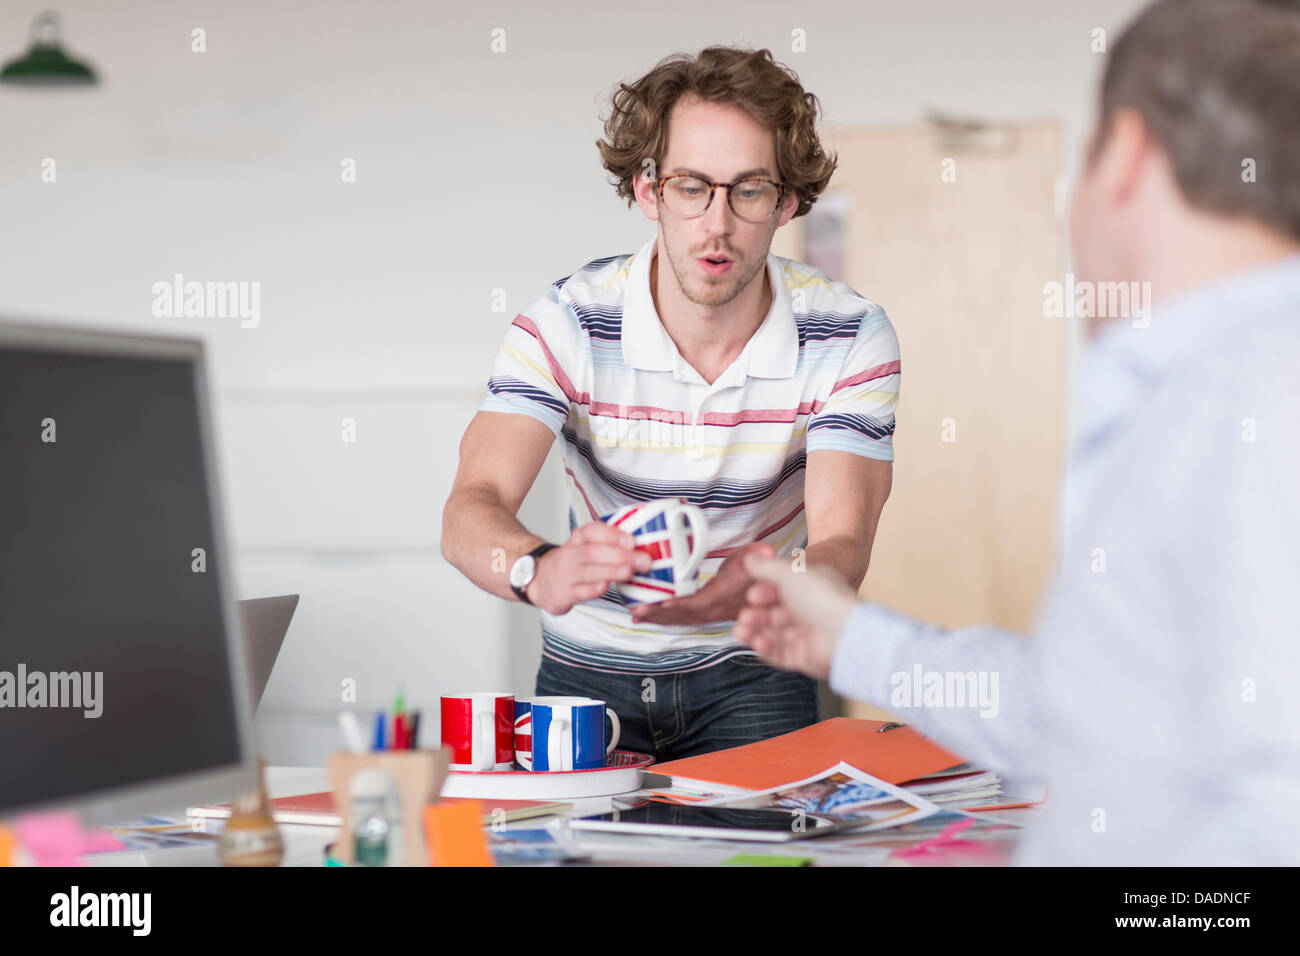 Office worker passing cup to colleague at desk - Stock Image